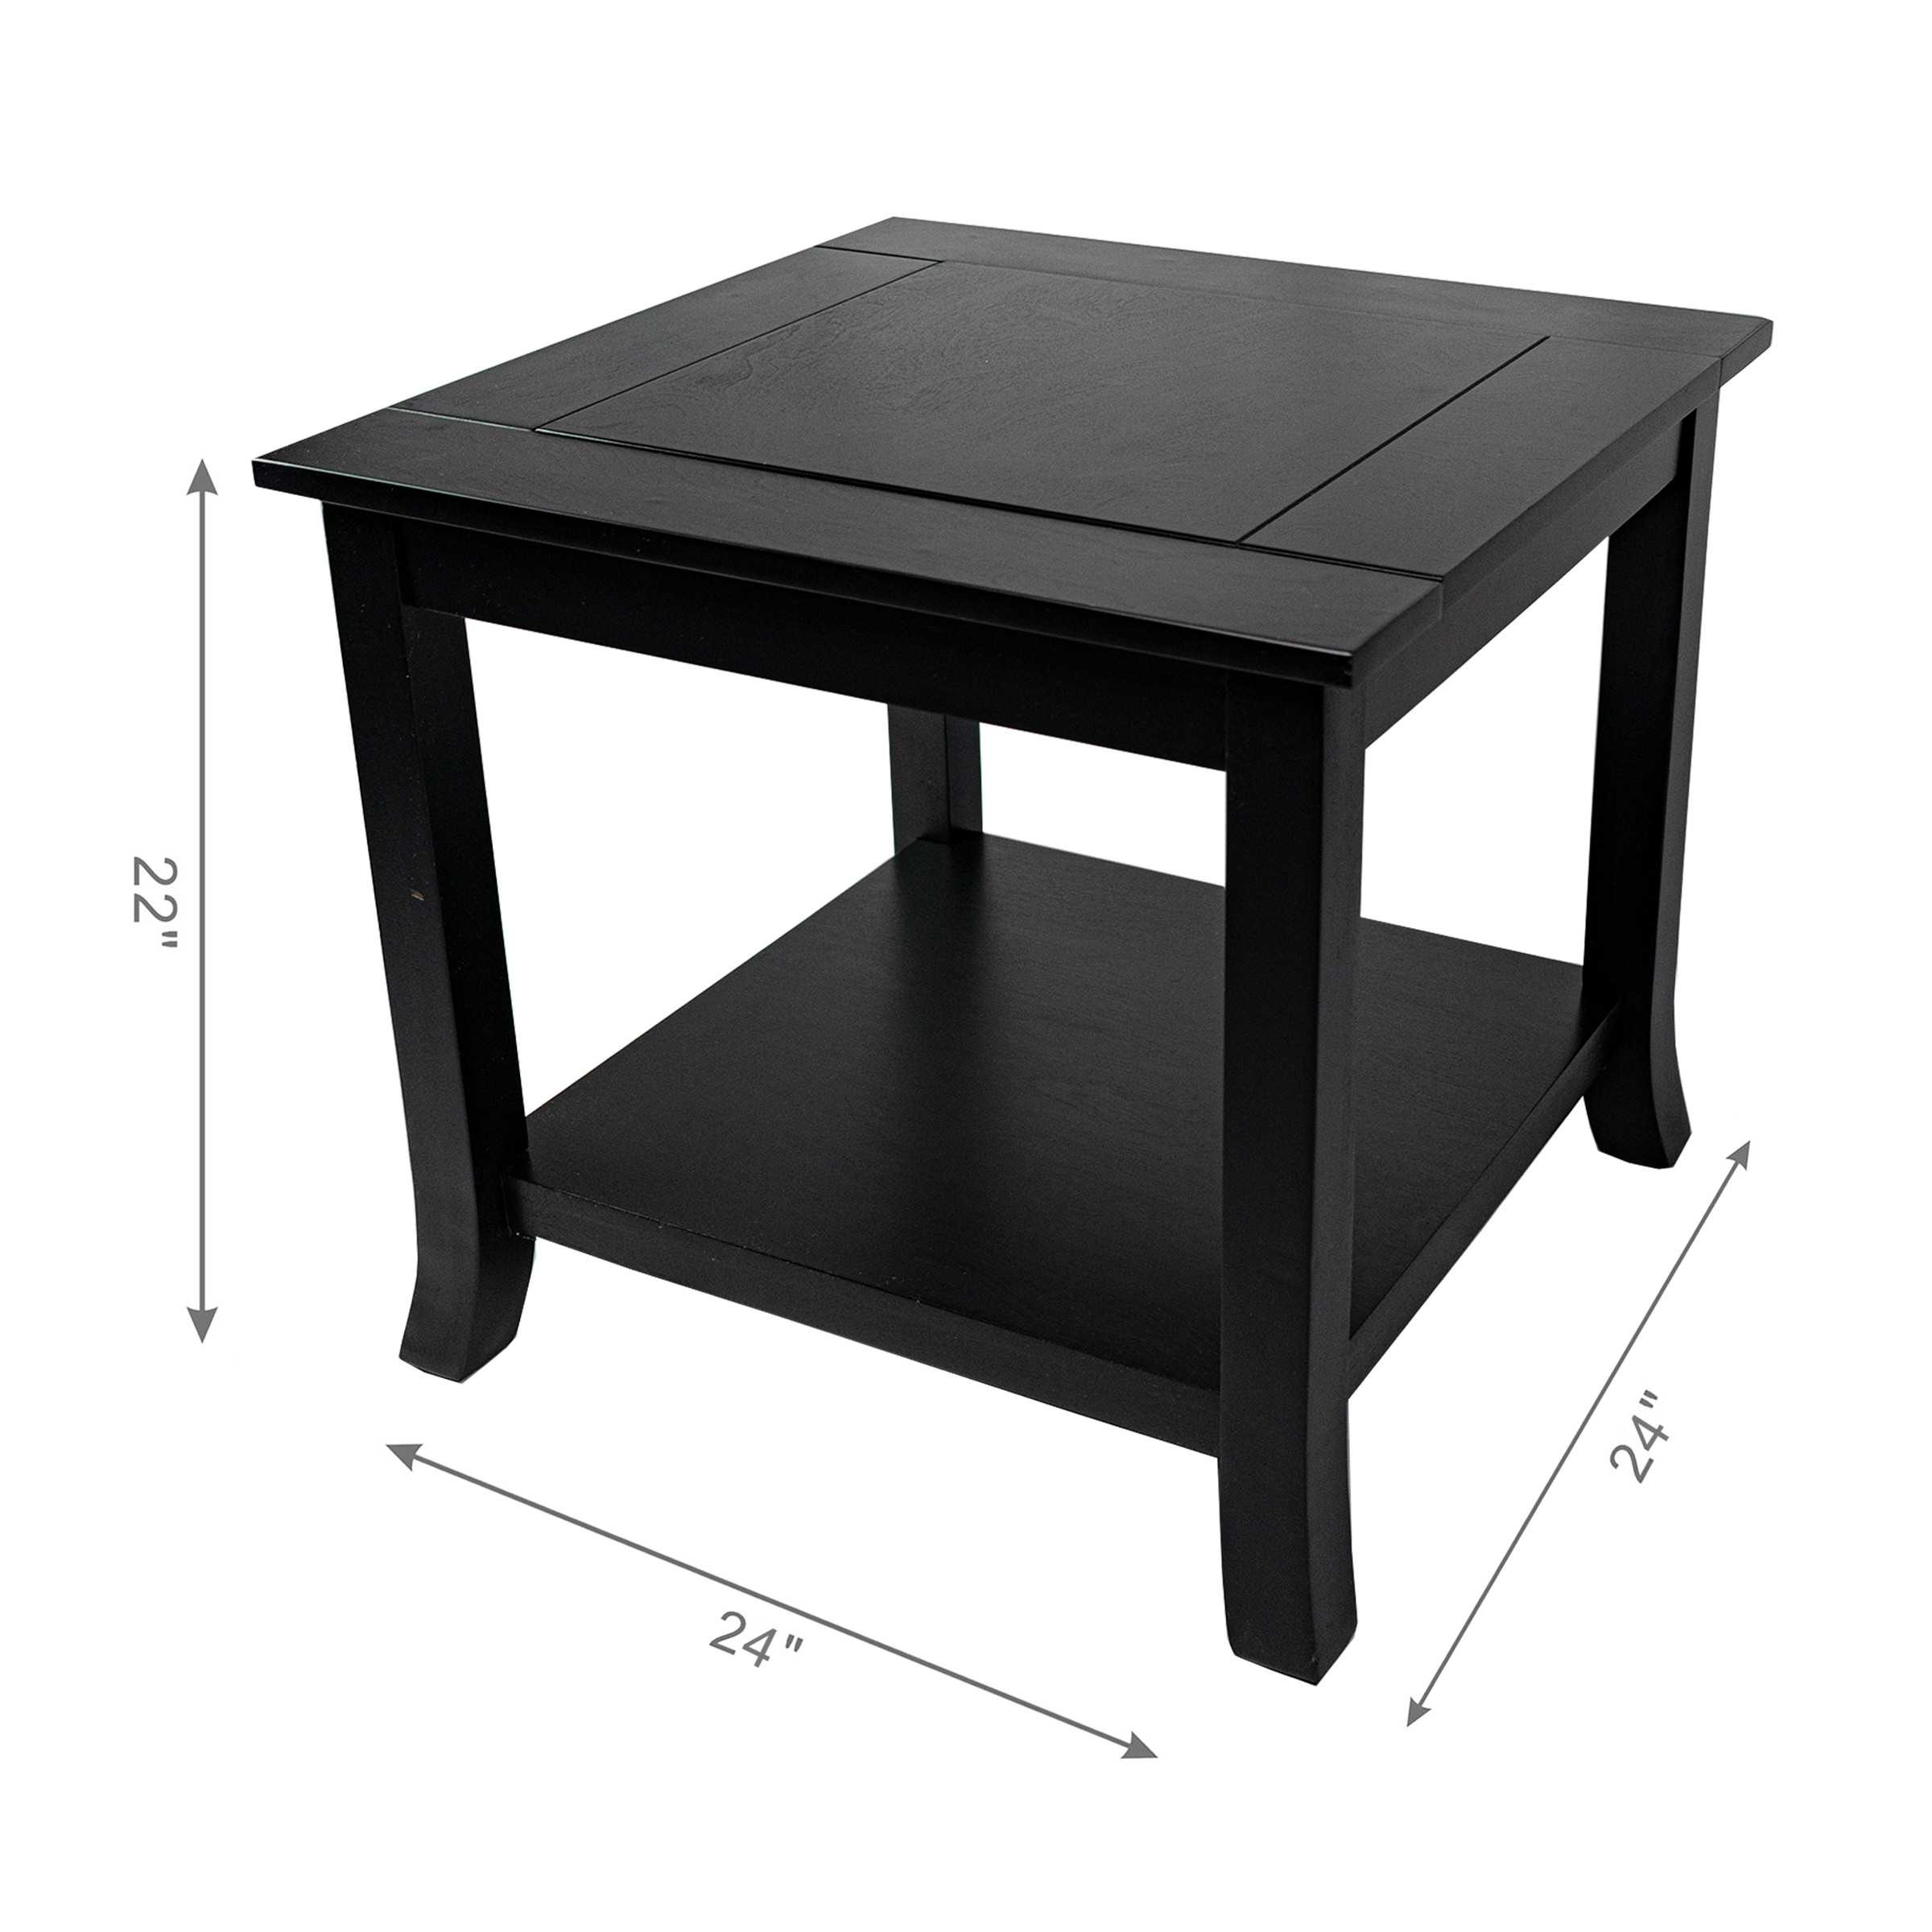 GOLDEN KNIGHTS SIDE TABLE